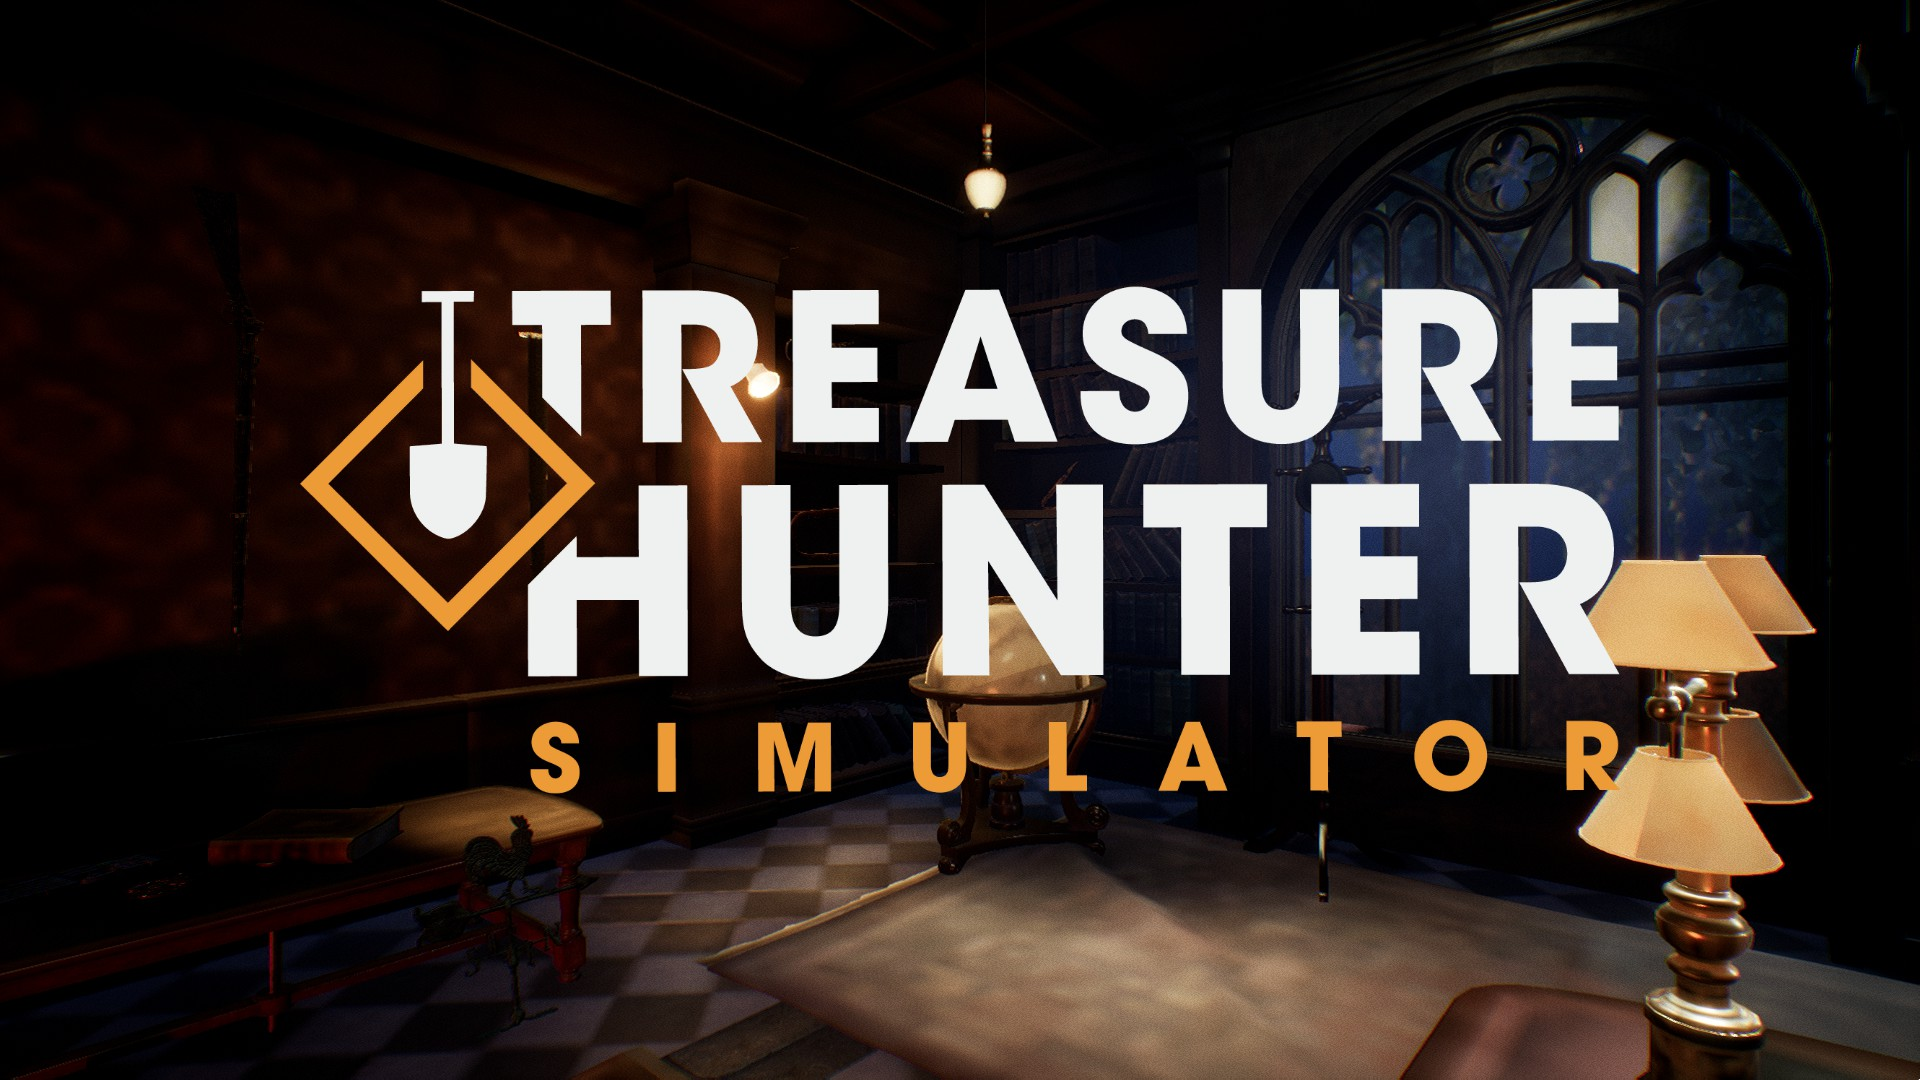 Treasure Hunter Simulator - Review 01